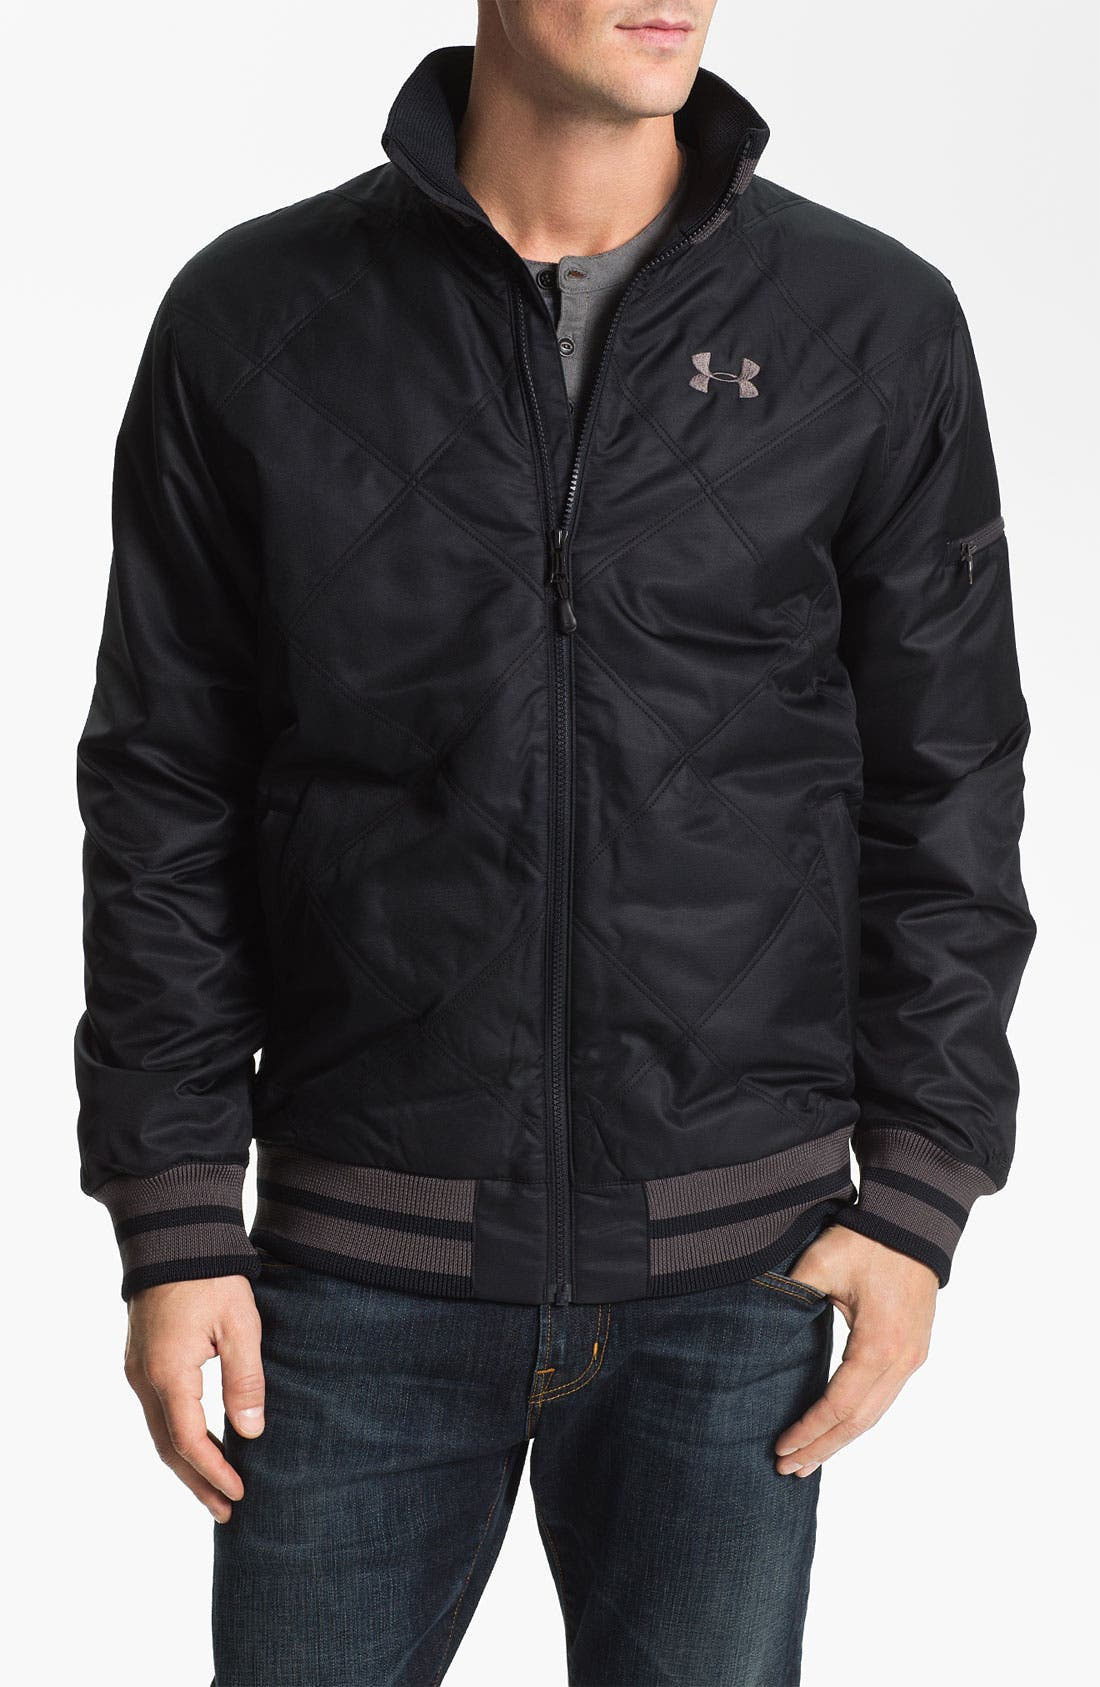 Alternate Image 1 Selected - Under Armour 'Focus Storm' Jacket